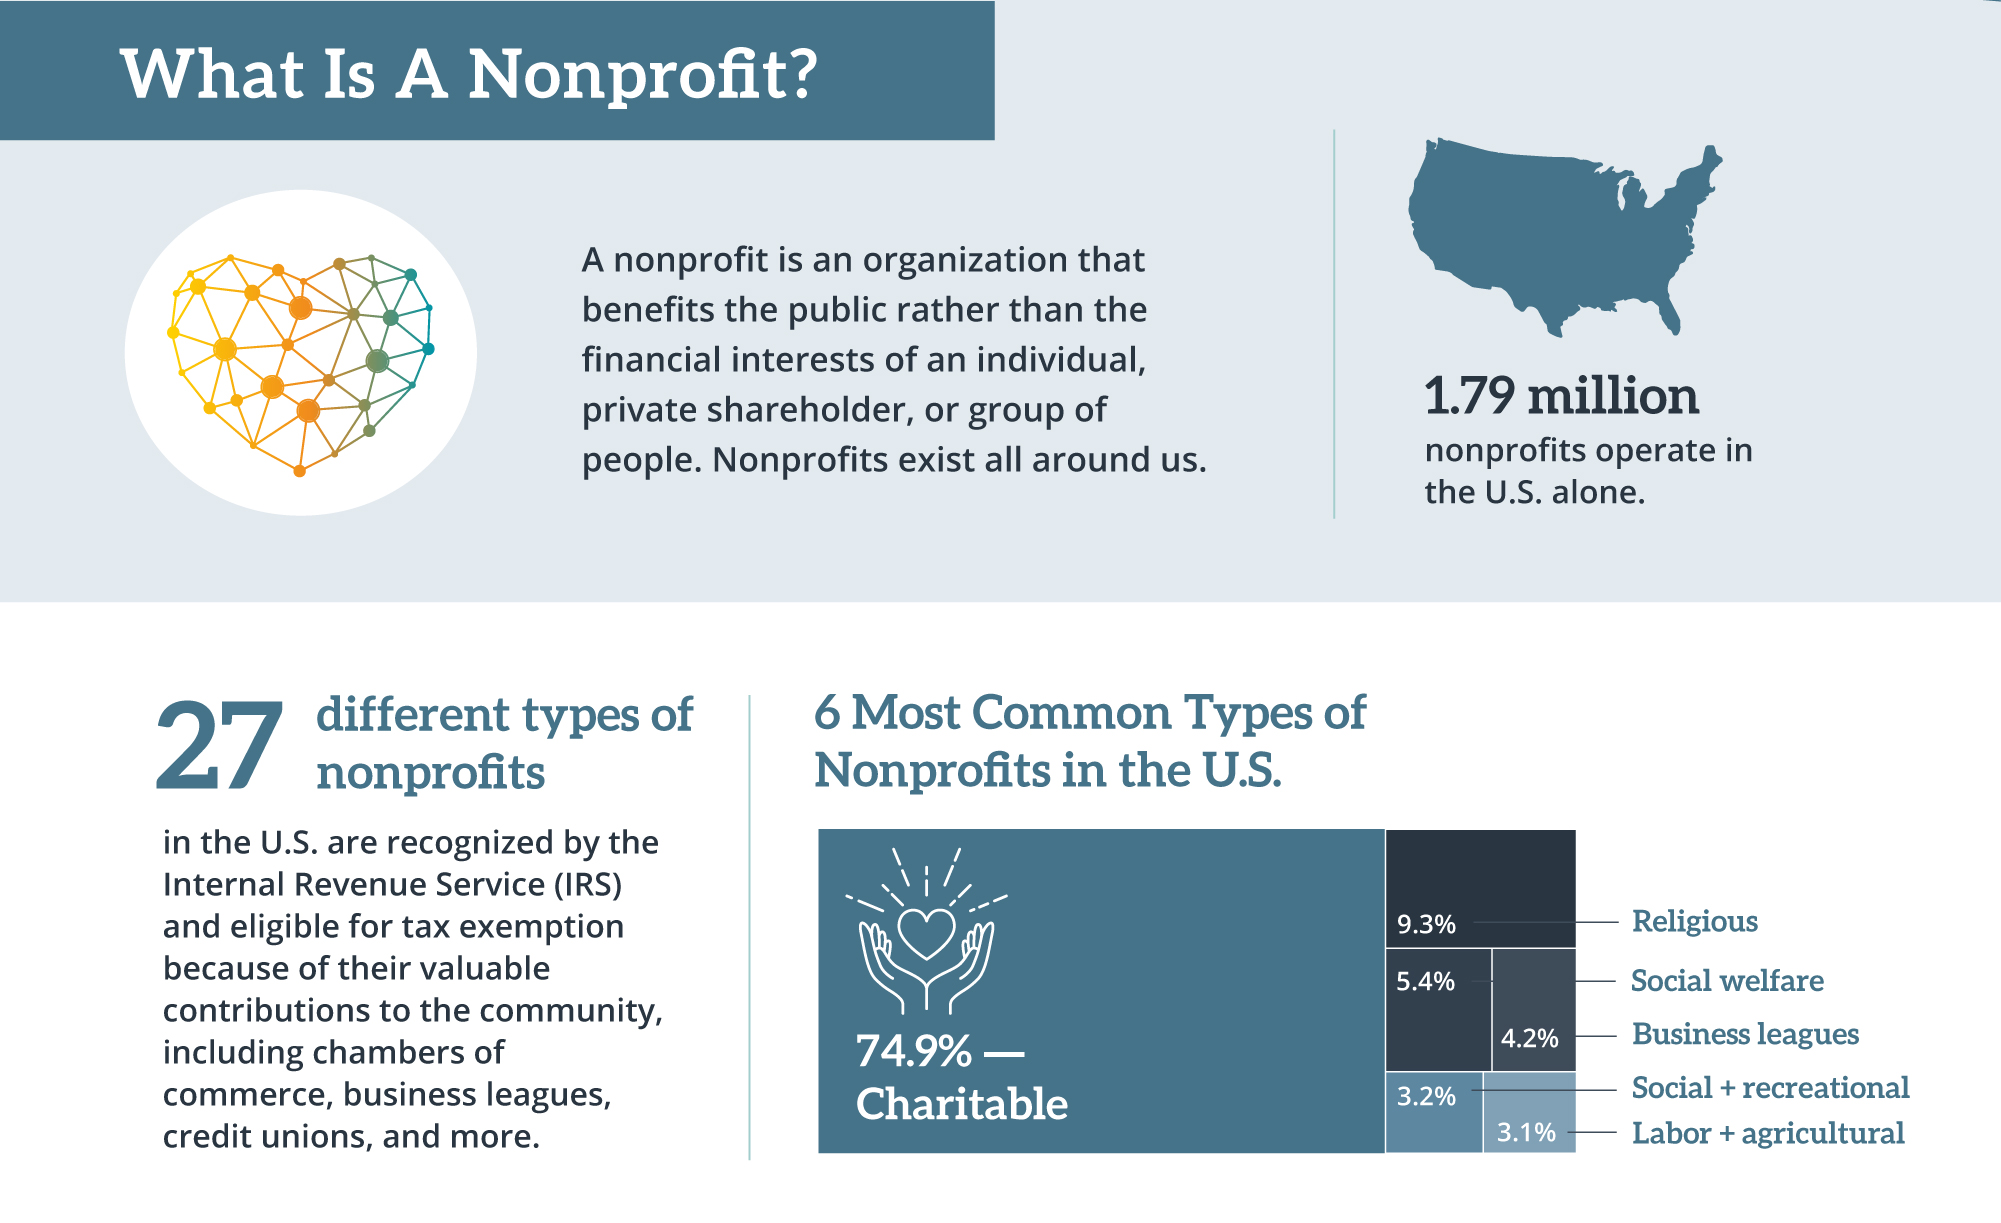 What is a nonprofit?